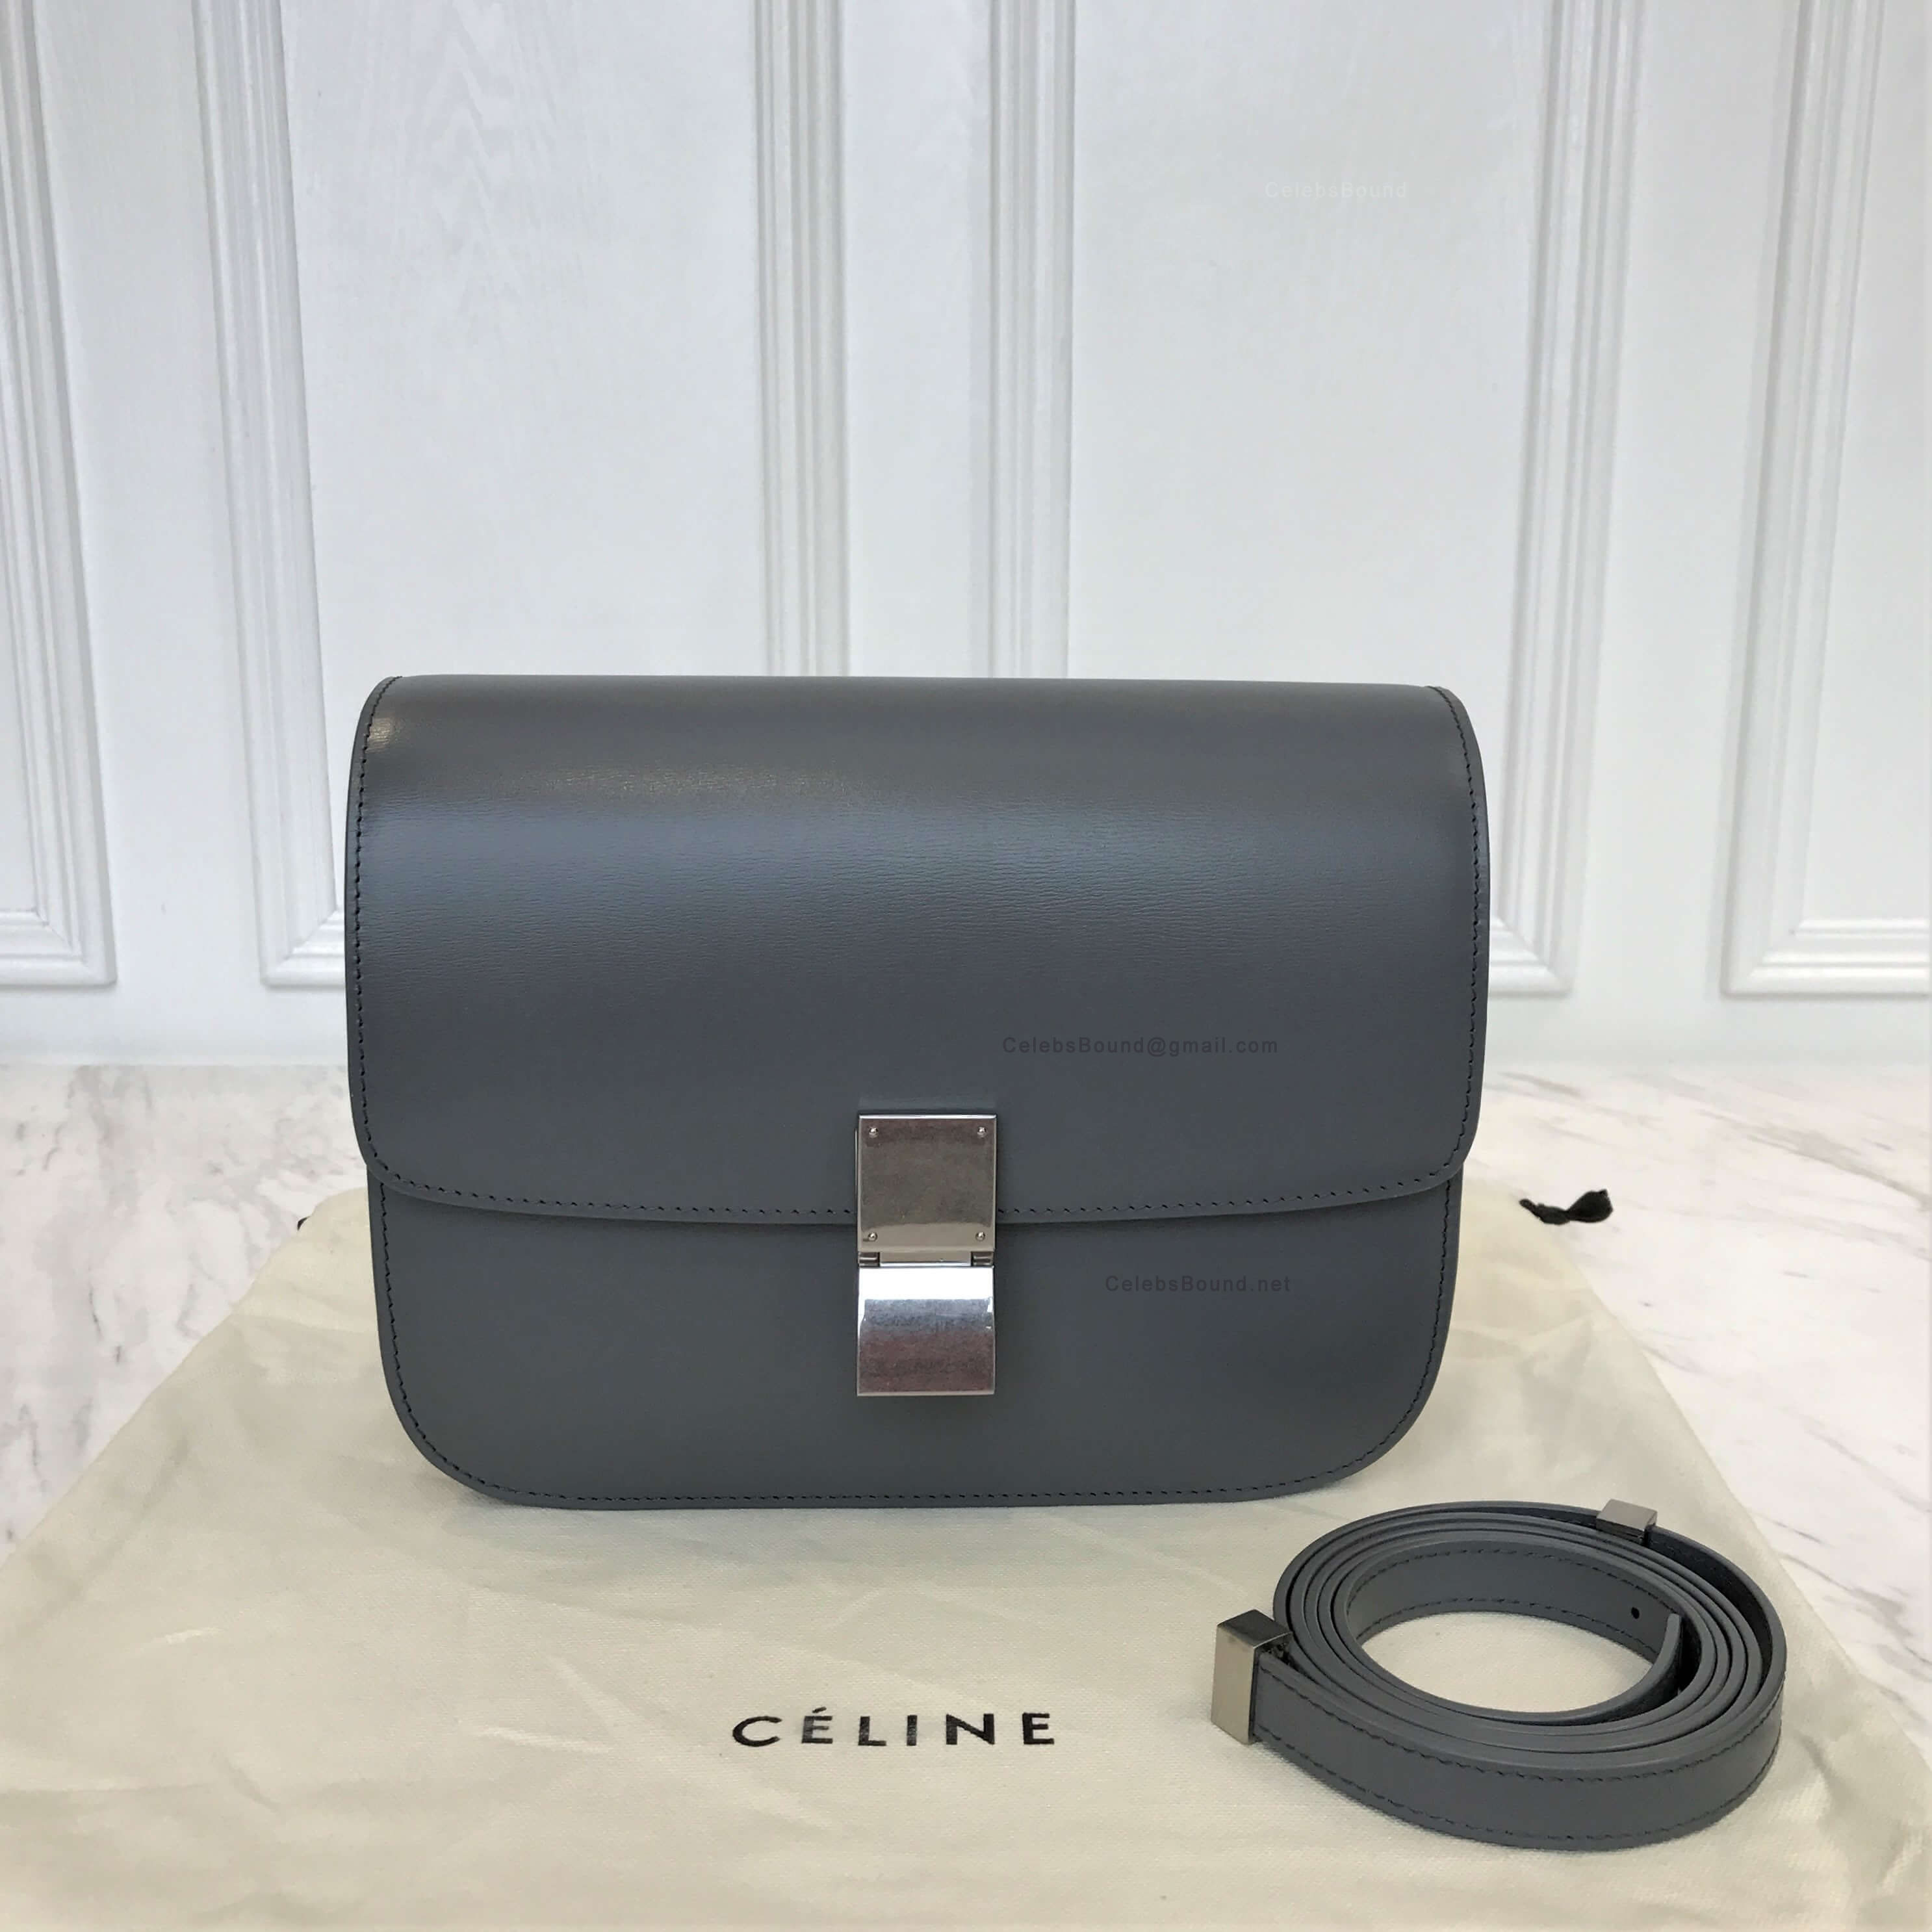 Celine Classic Box Bag Medium in Slate Grey Liege Calfskin